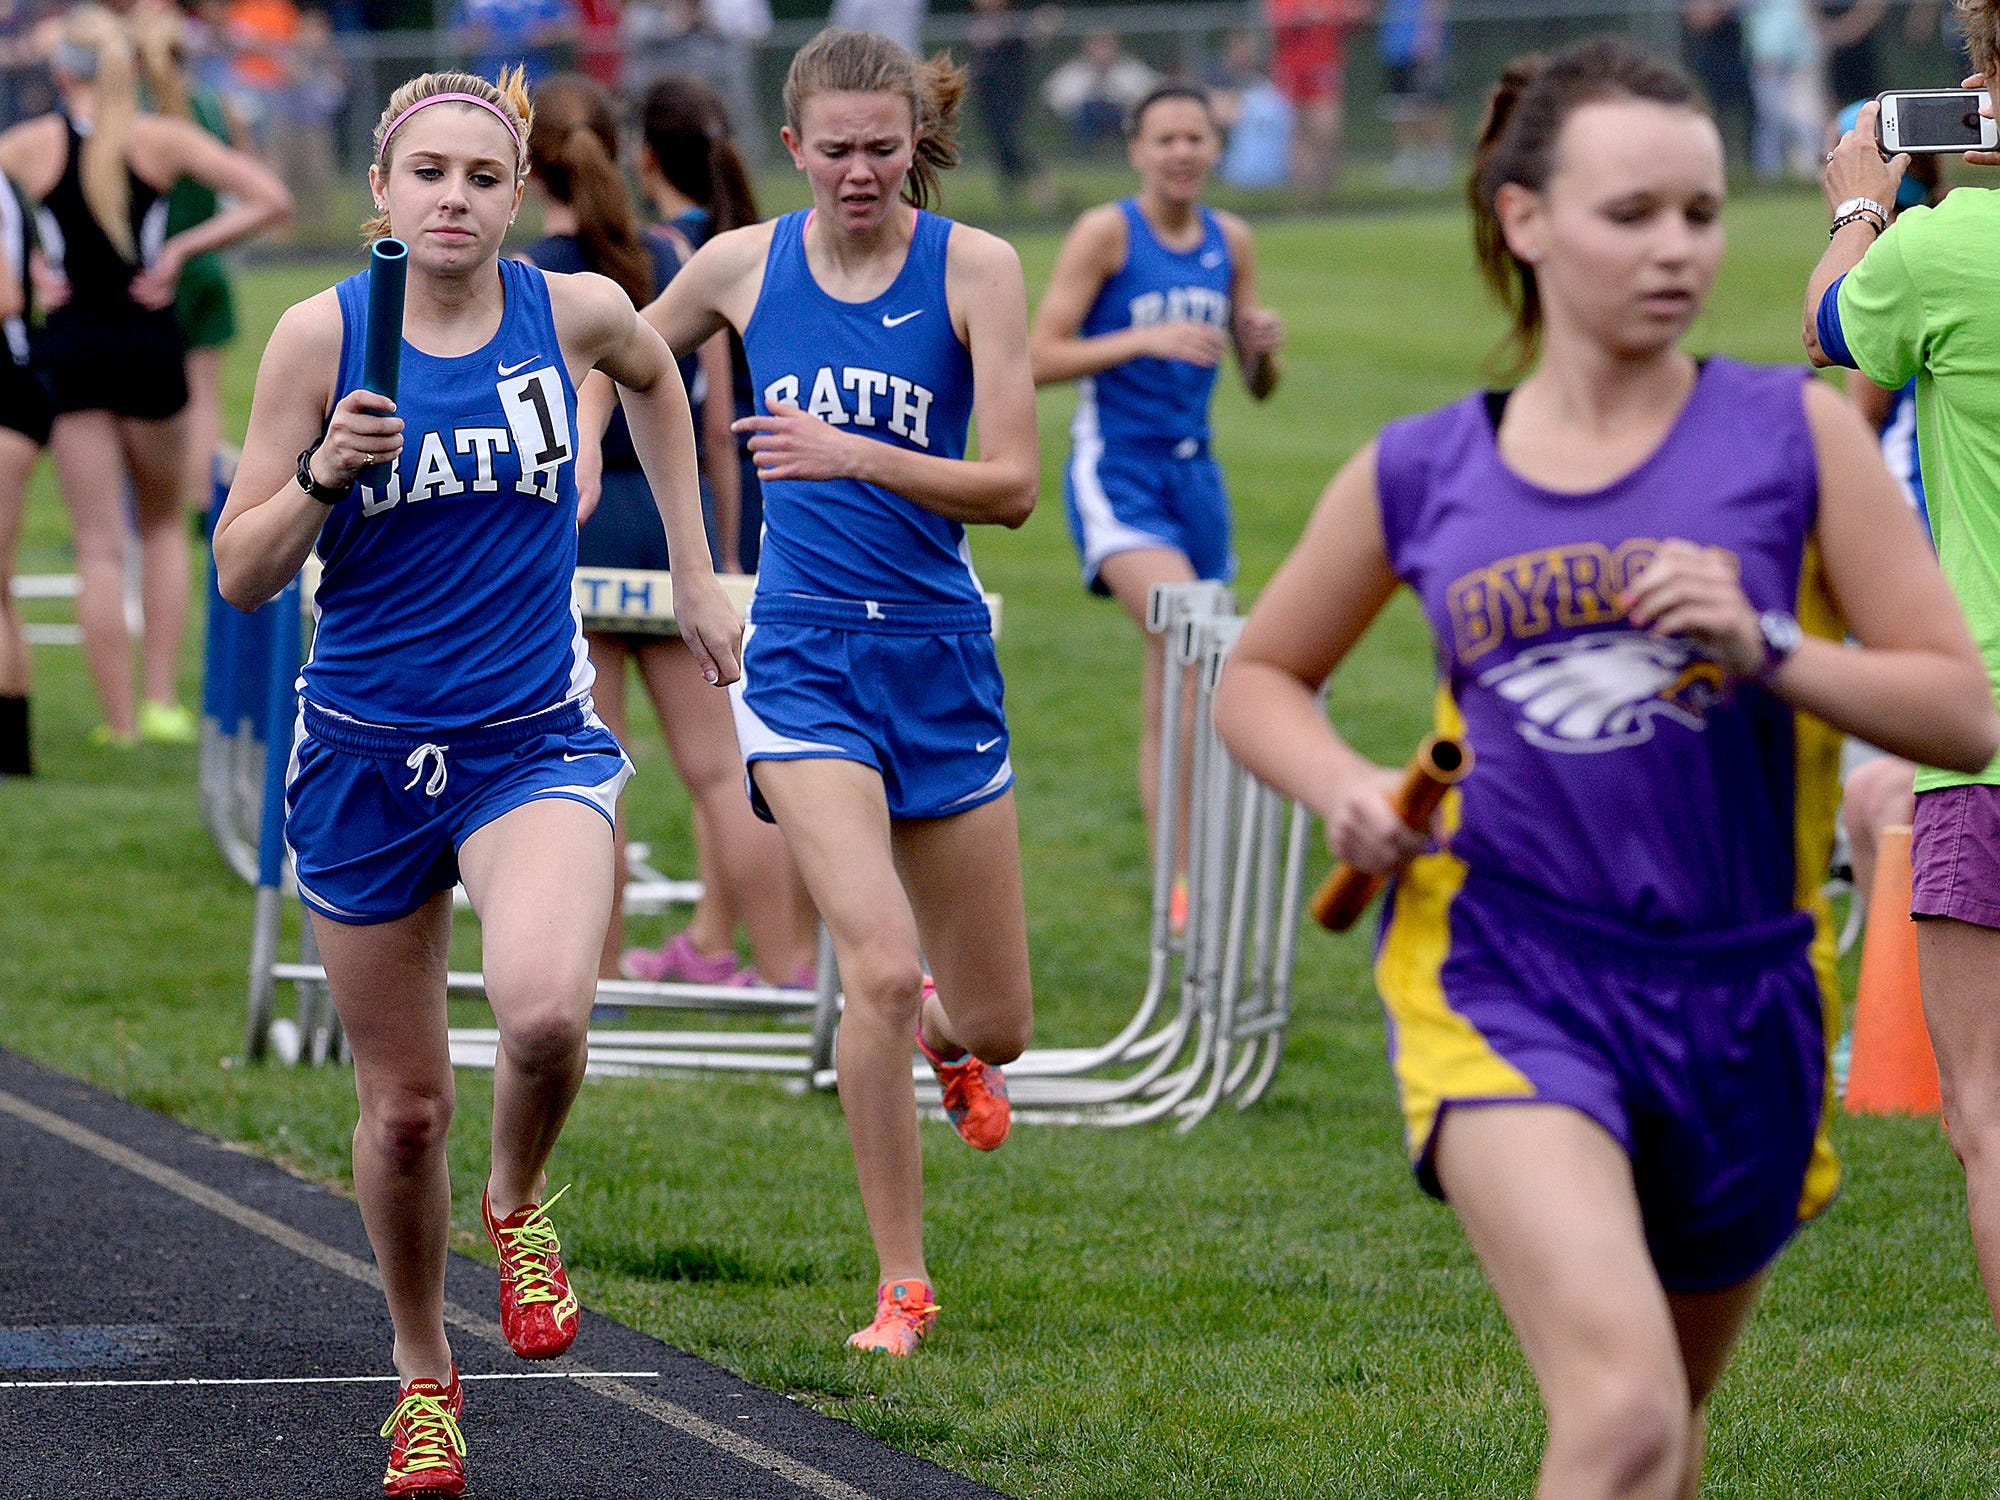 Bath's Kelsey Billingsley gets the baton from teammate Melissa Schott en route to a first place finish during the finals of the girls 4x800-meter relay Friday May 15, 2015, at the Division 3 Regional meet at Bath High School.